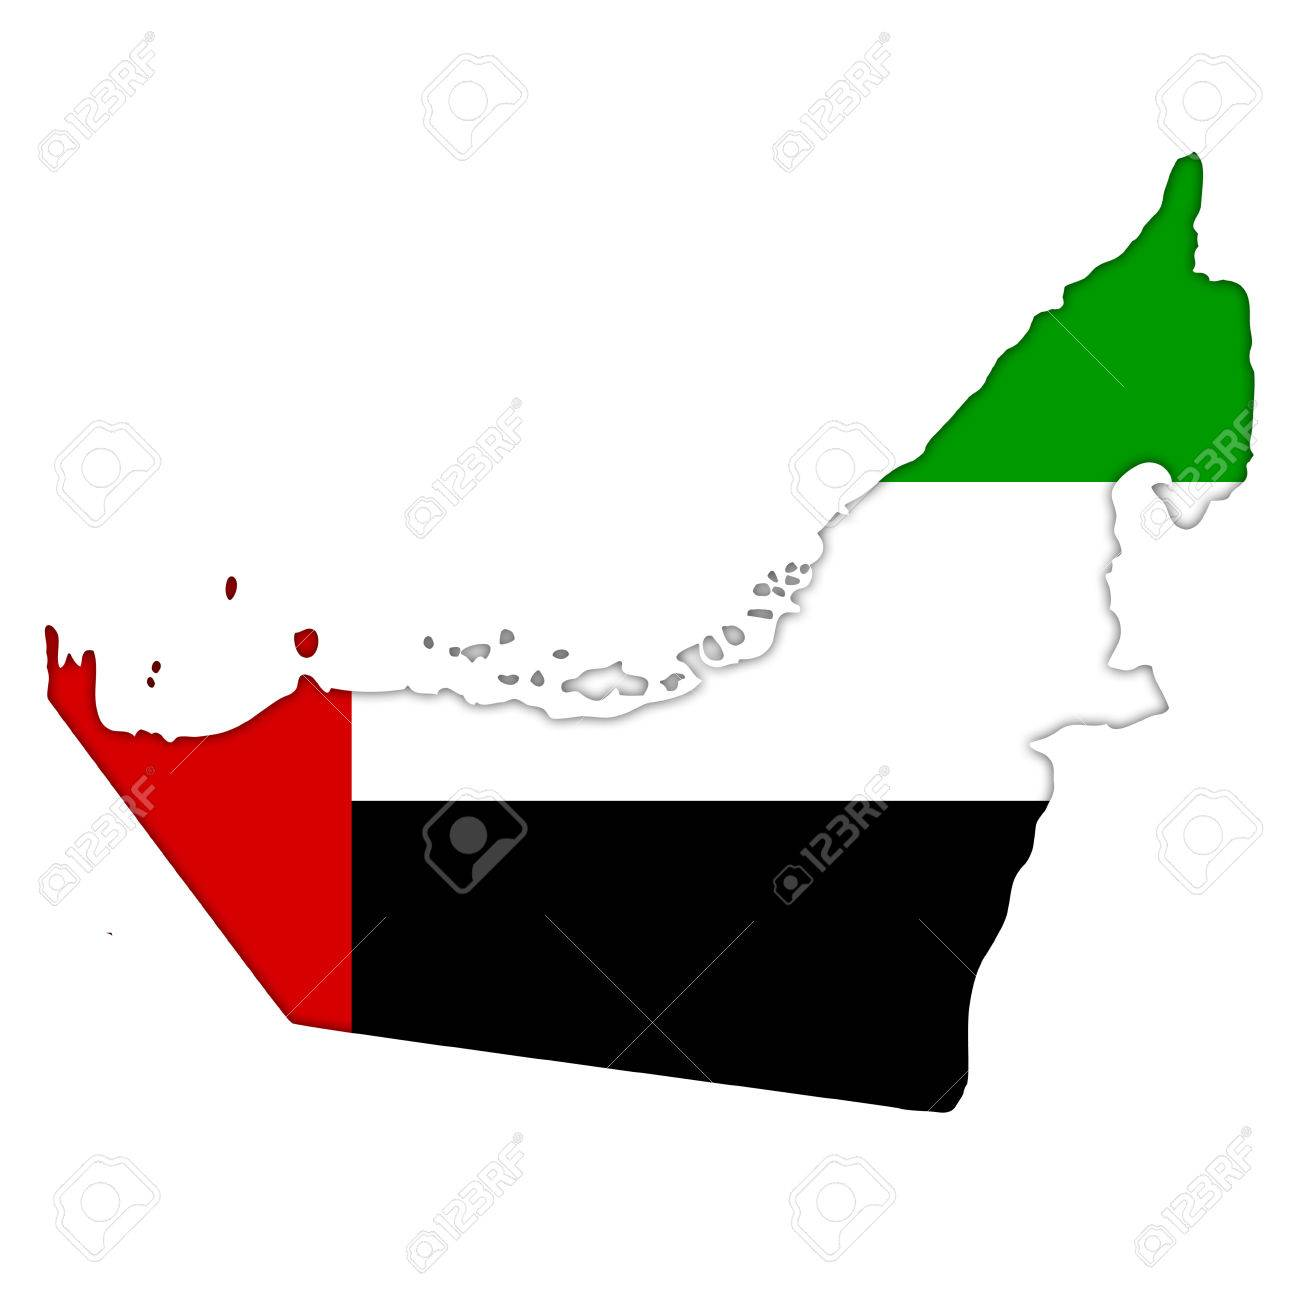 United Arab Emirates Flag Icon Map Stock Photo, Picture And Royalty ...